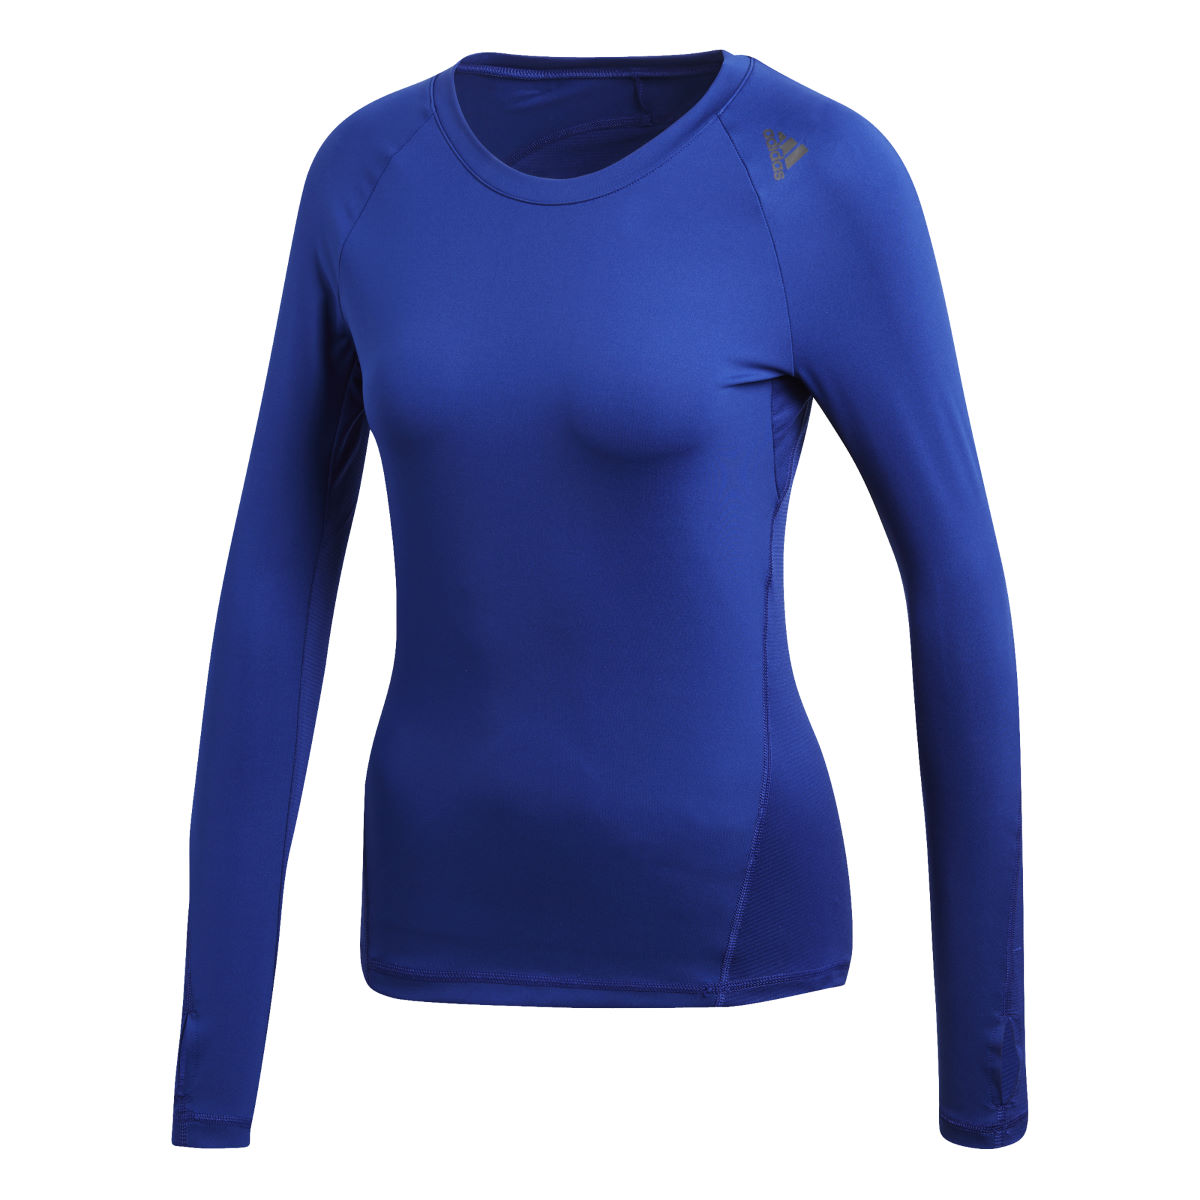 Maillot Femme adidas Alphaskin Sport (manches longues) - L